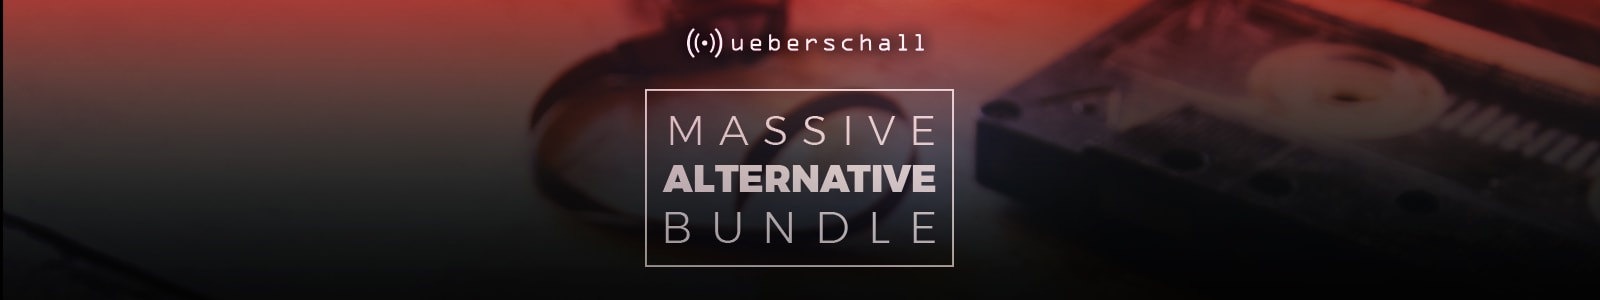 massive alternative bundle